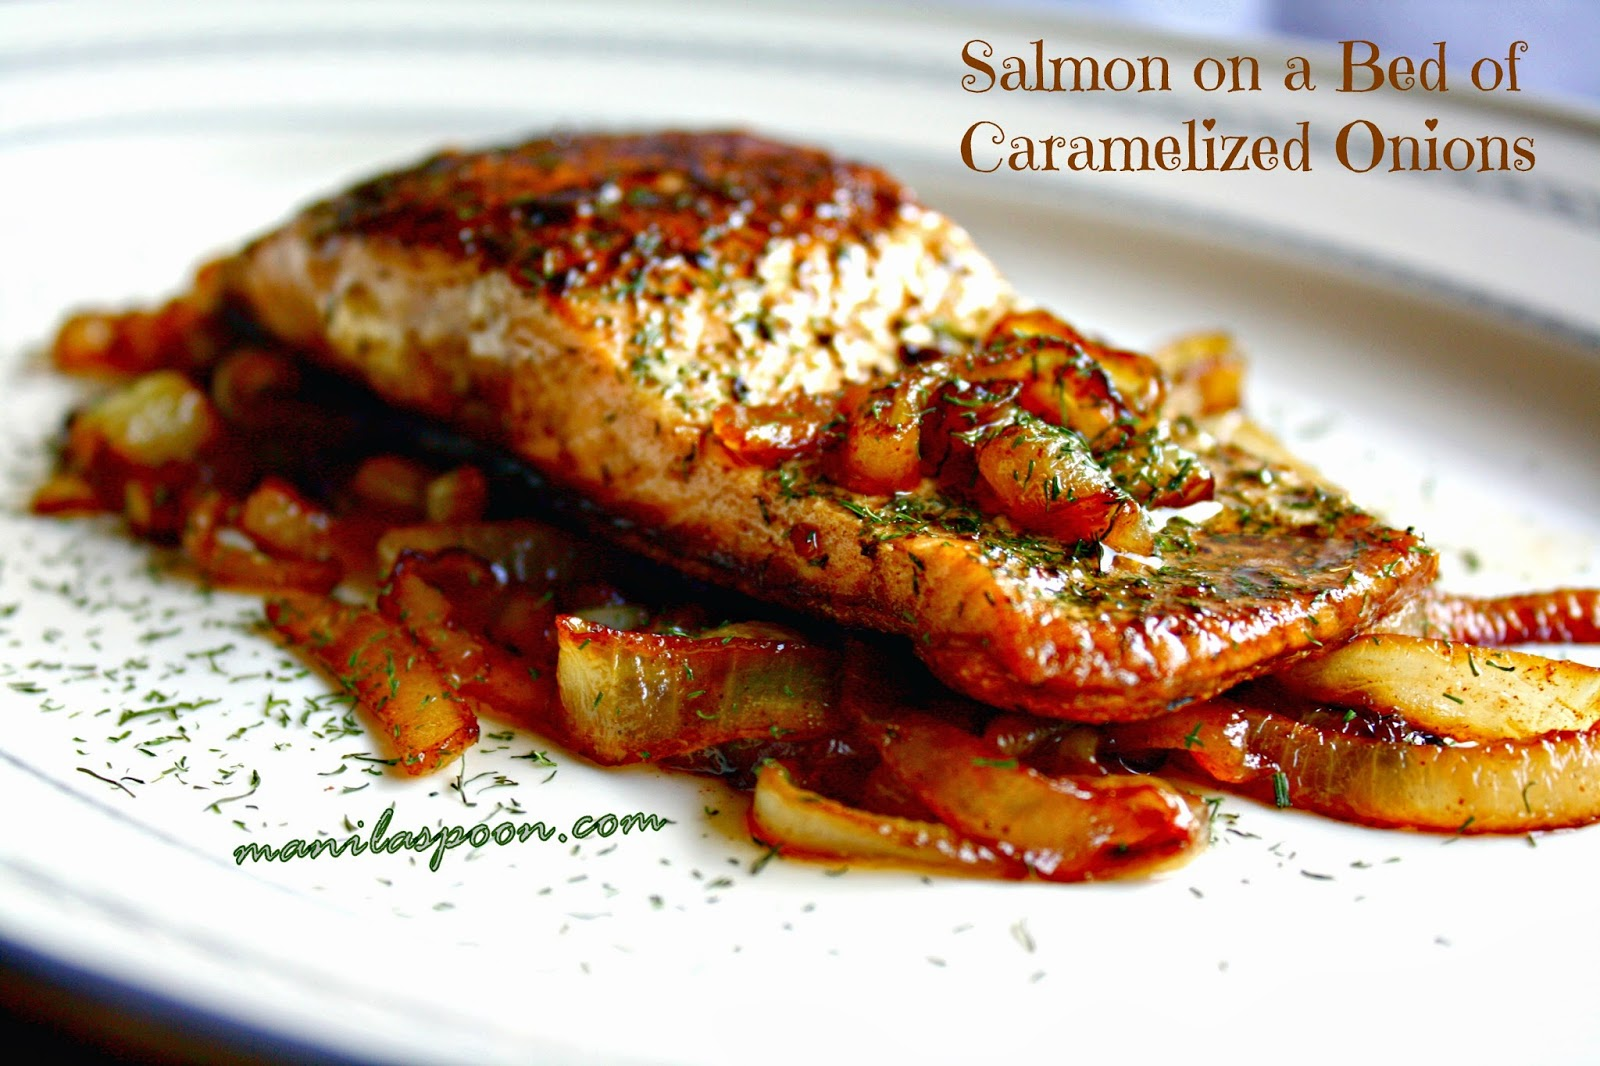 This super EASY recipe is so delicious that even kids love it! The caramelized onions are sweet and add so much flavor to the fish - SALMON ON A BED OF CARAMELIZED ONIONS.